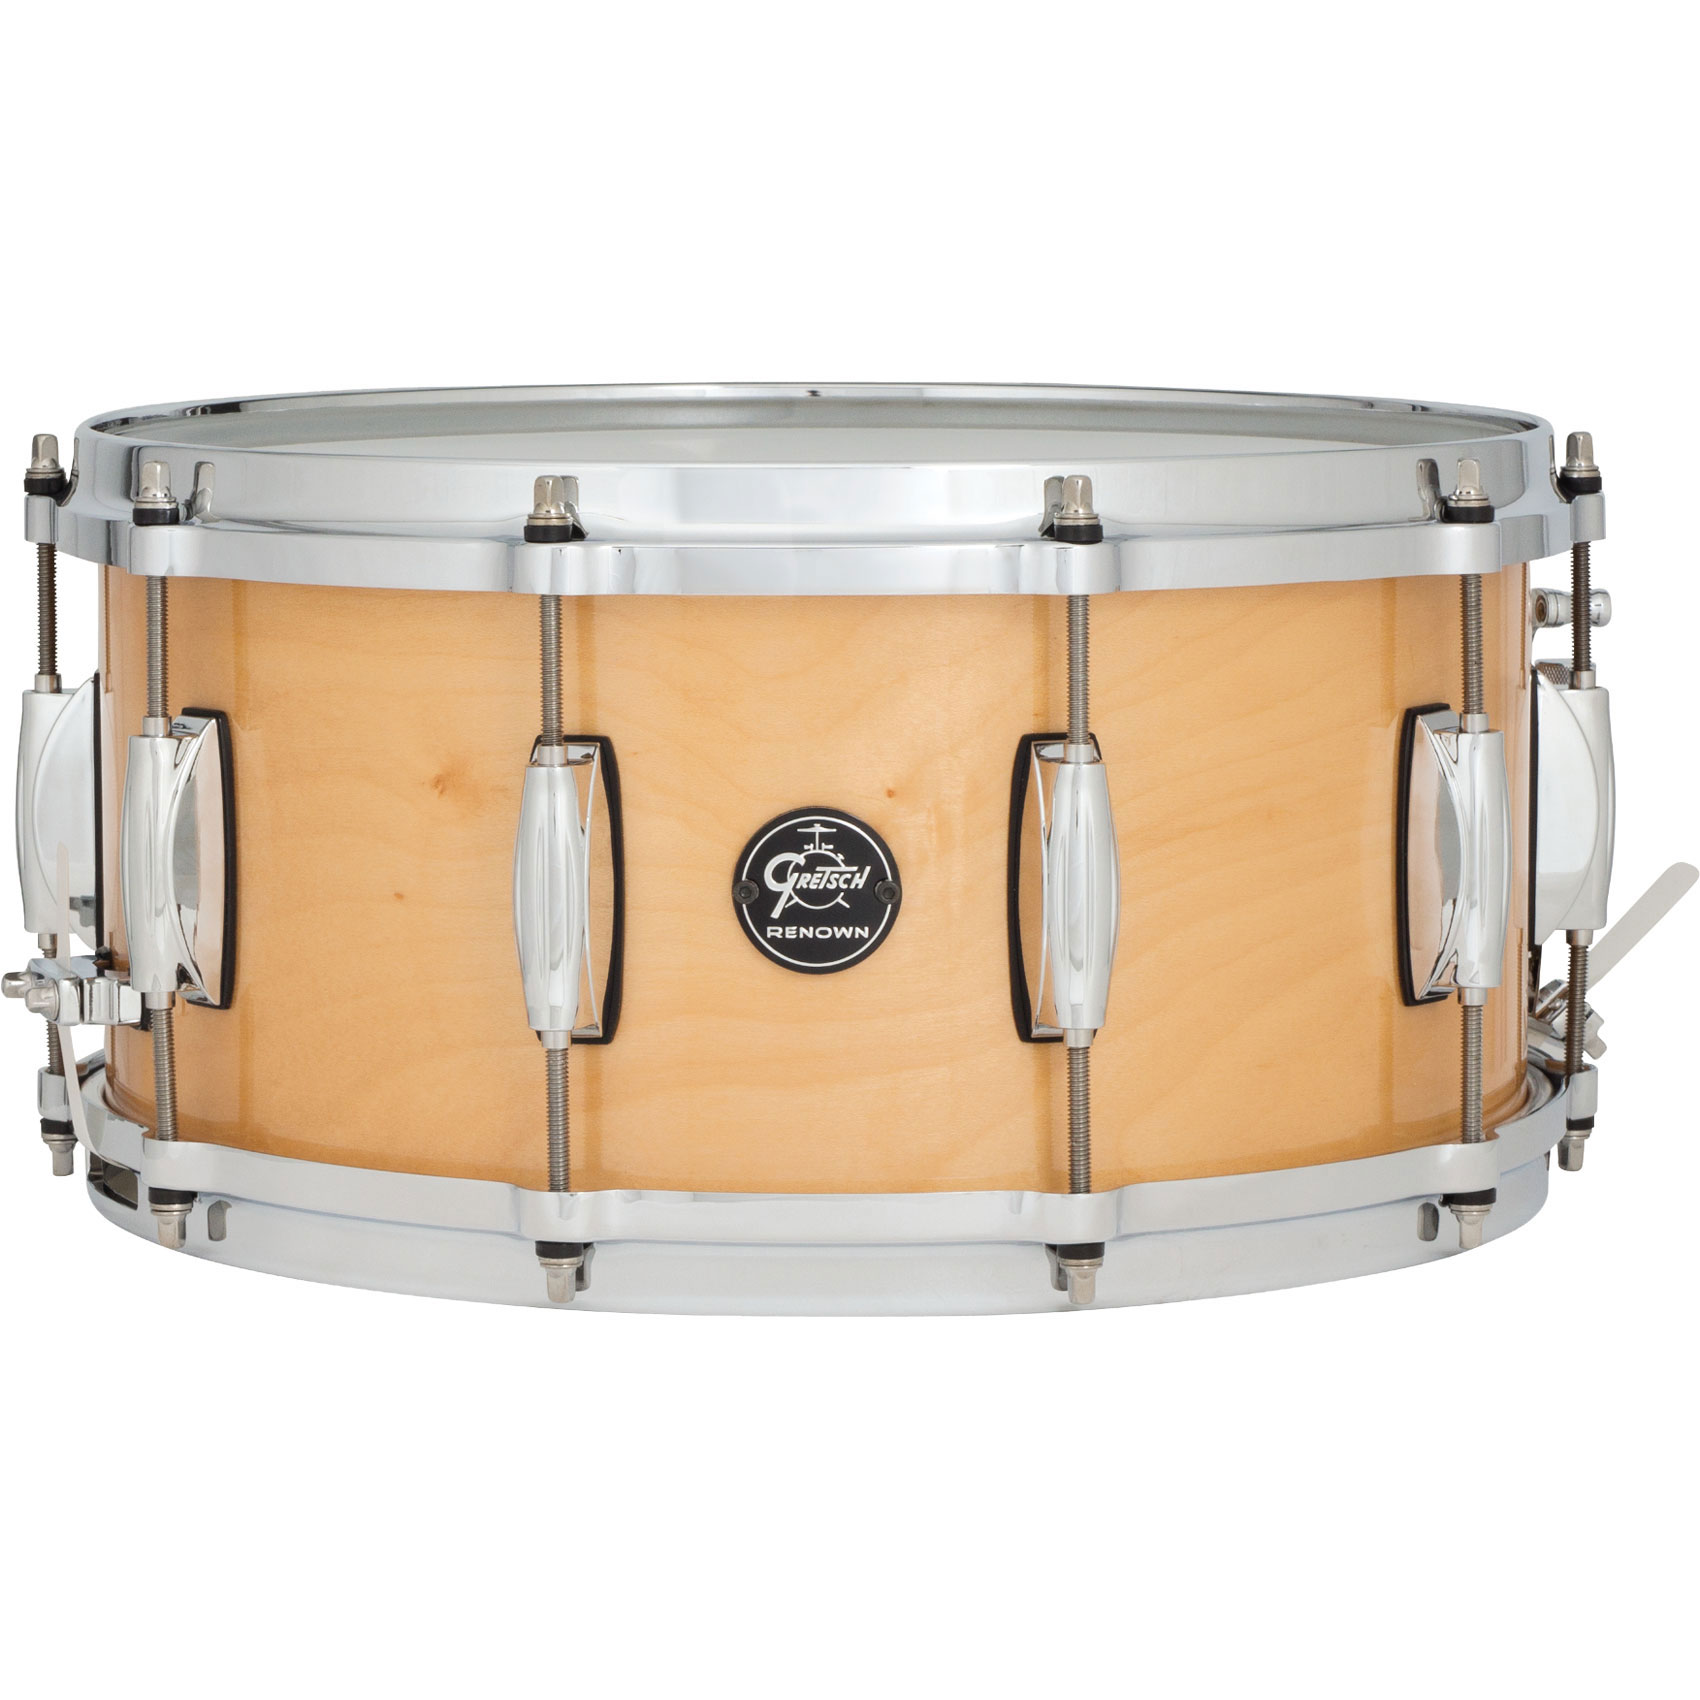 "Gretsch 5"" x 14"" Renown Snare Drum"